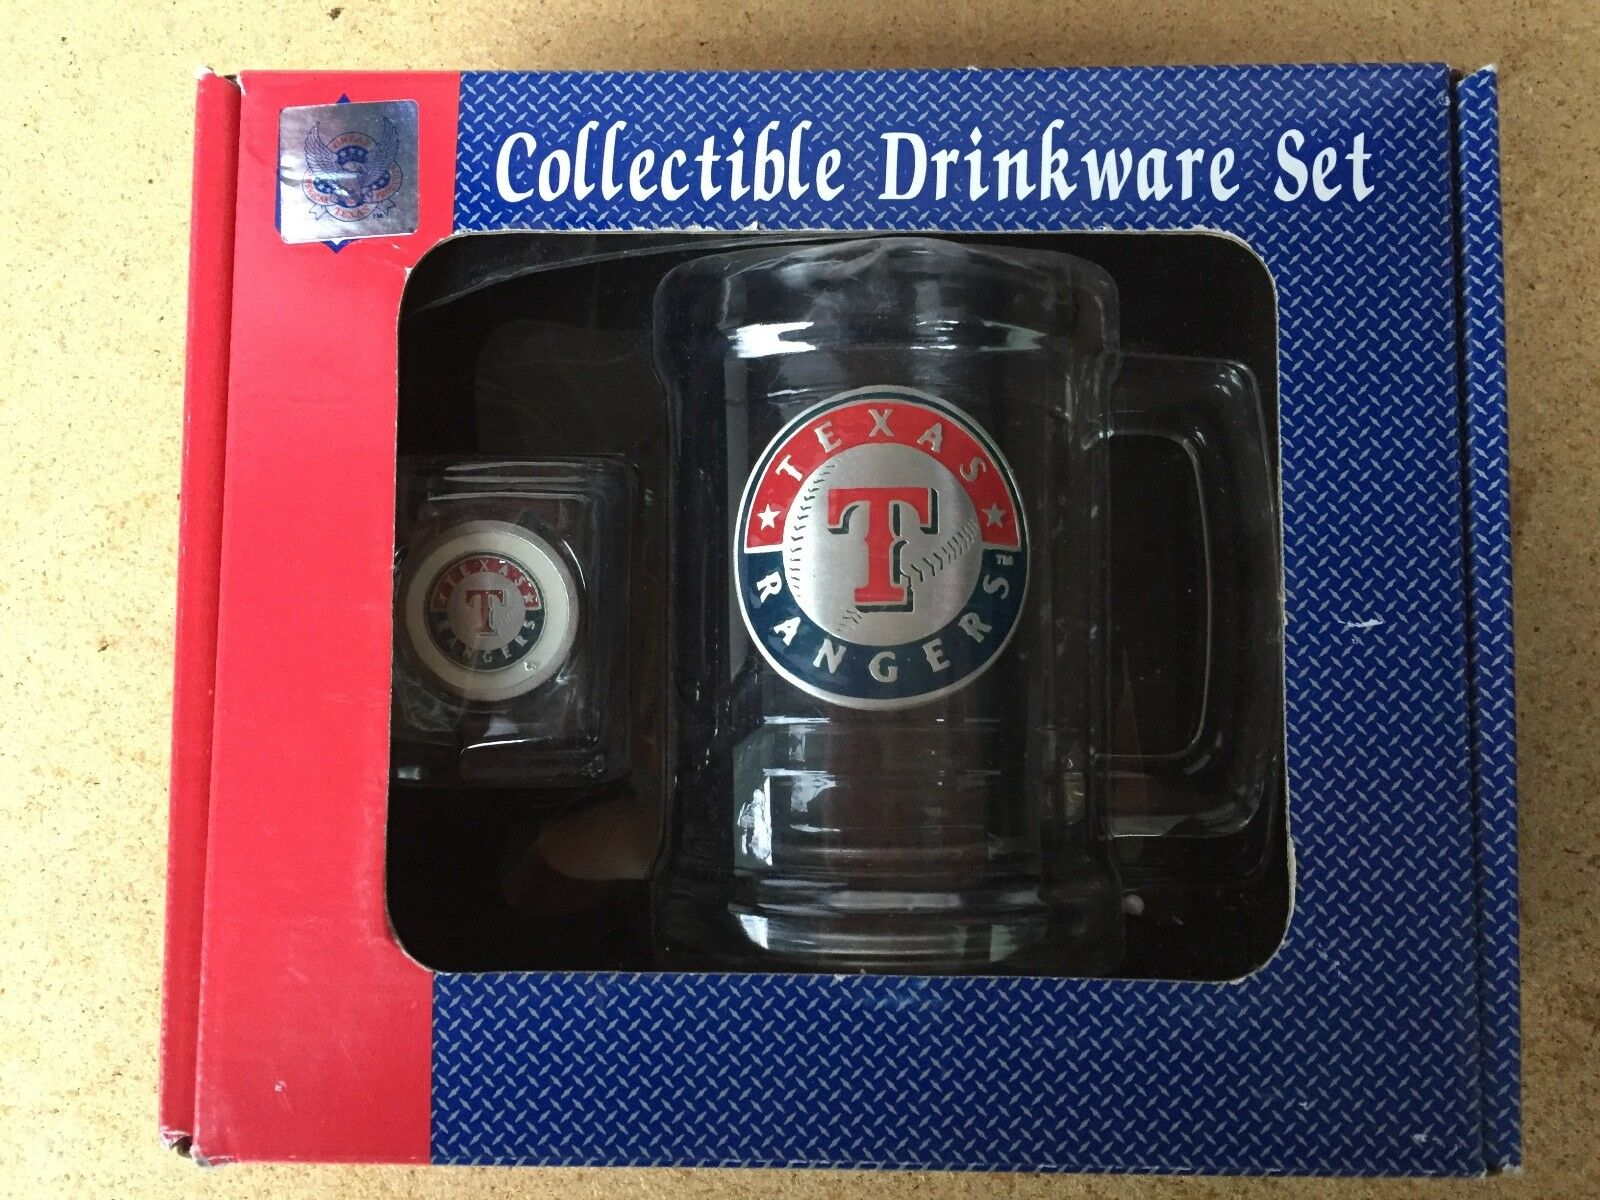 NIB NOS Great American Texas Products TEXAS RANGERS Collectible Bar Drinkware